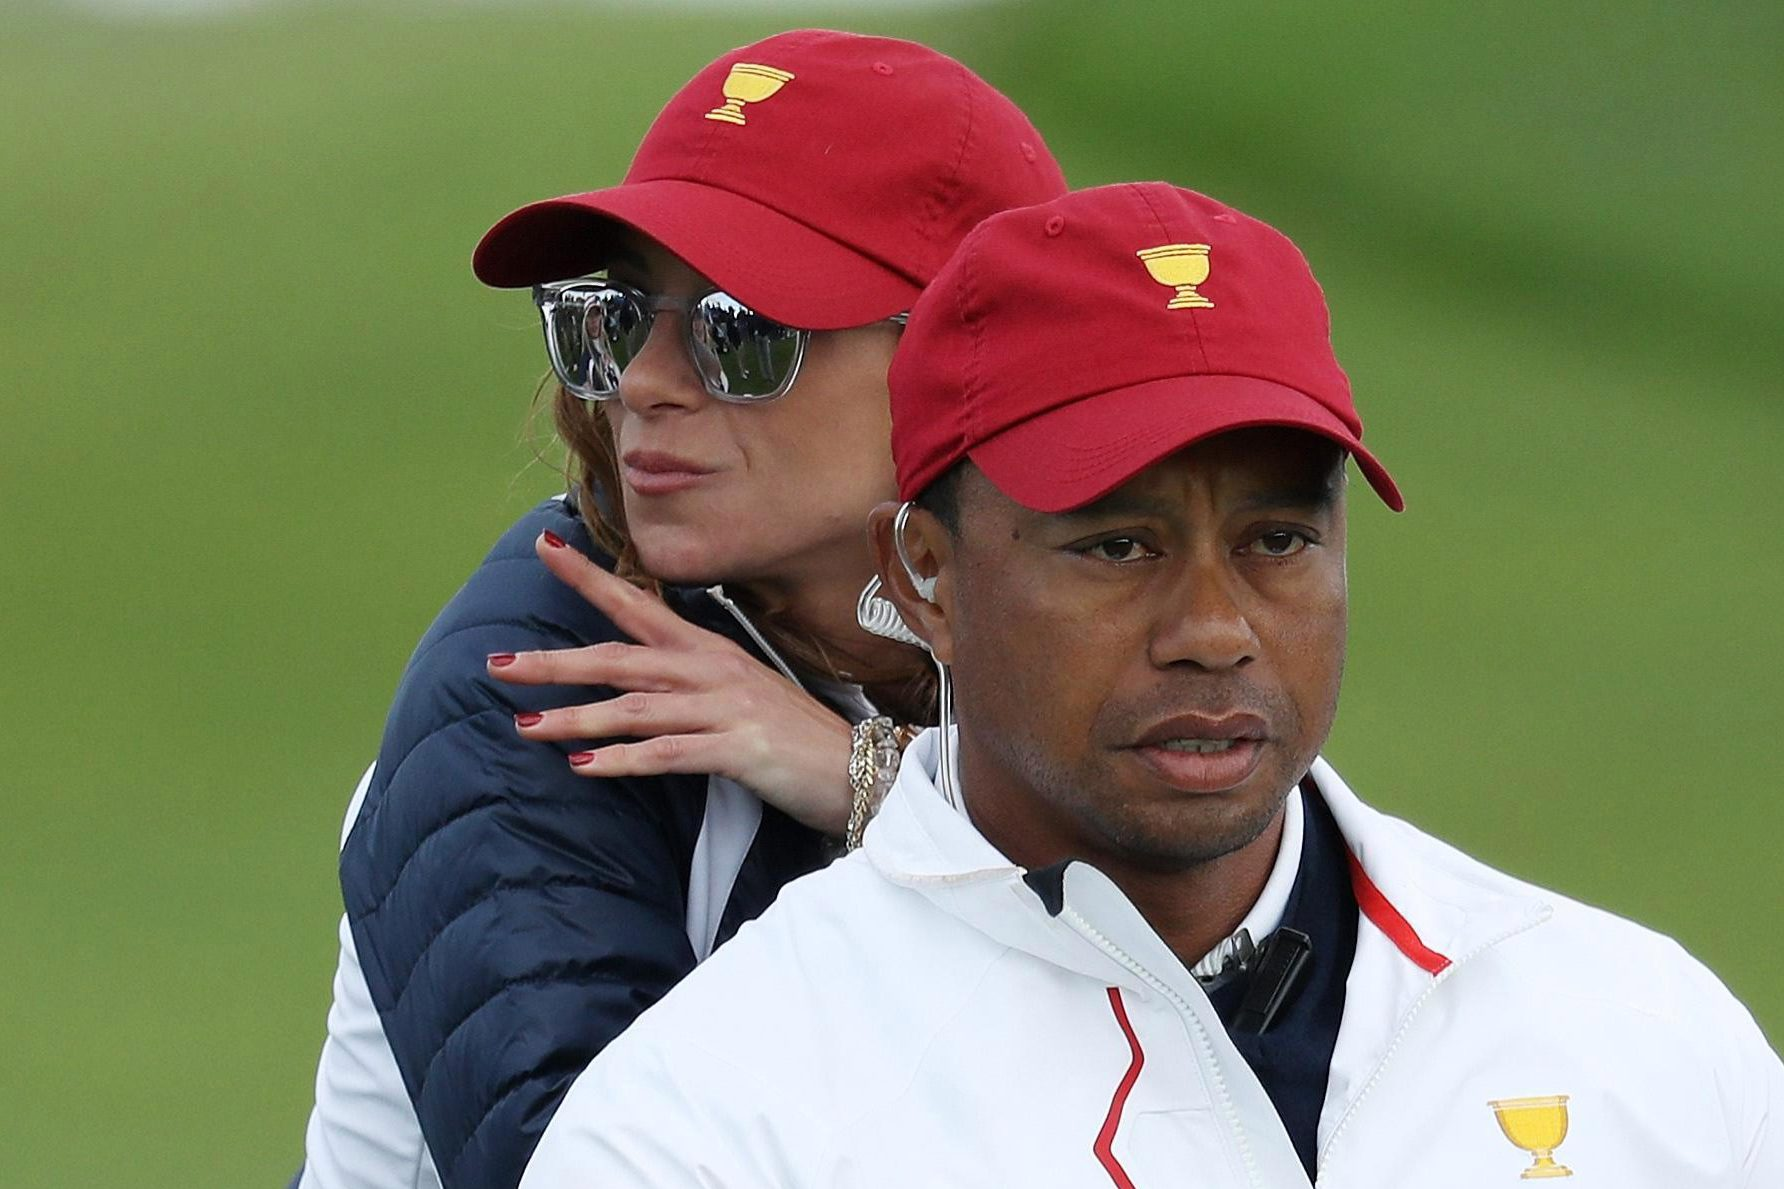 Meet Erica Herman, the new lady in Tiger Wood's life